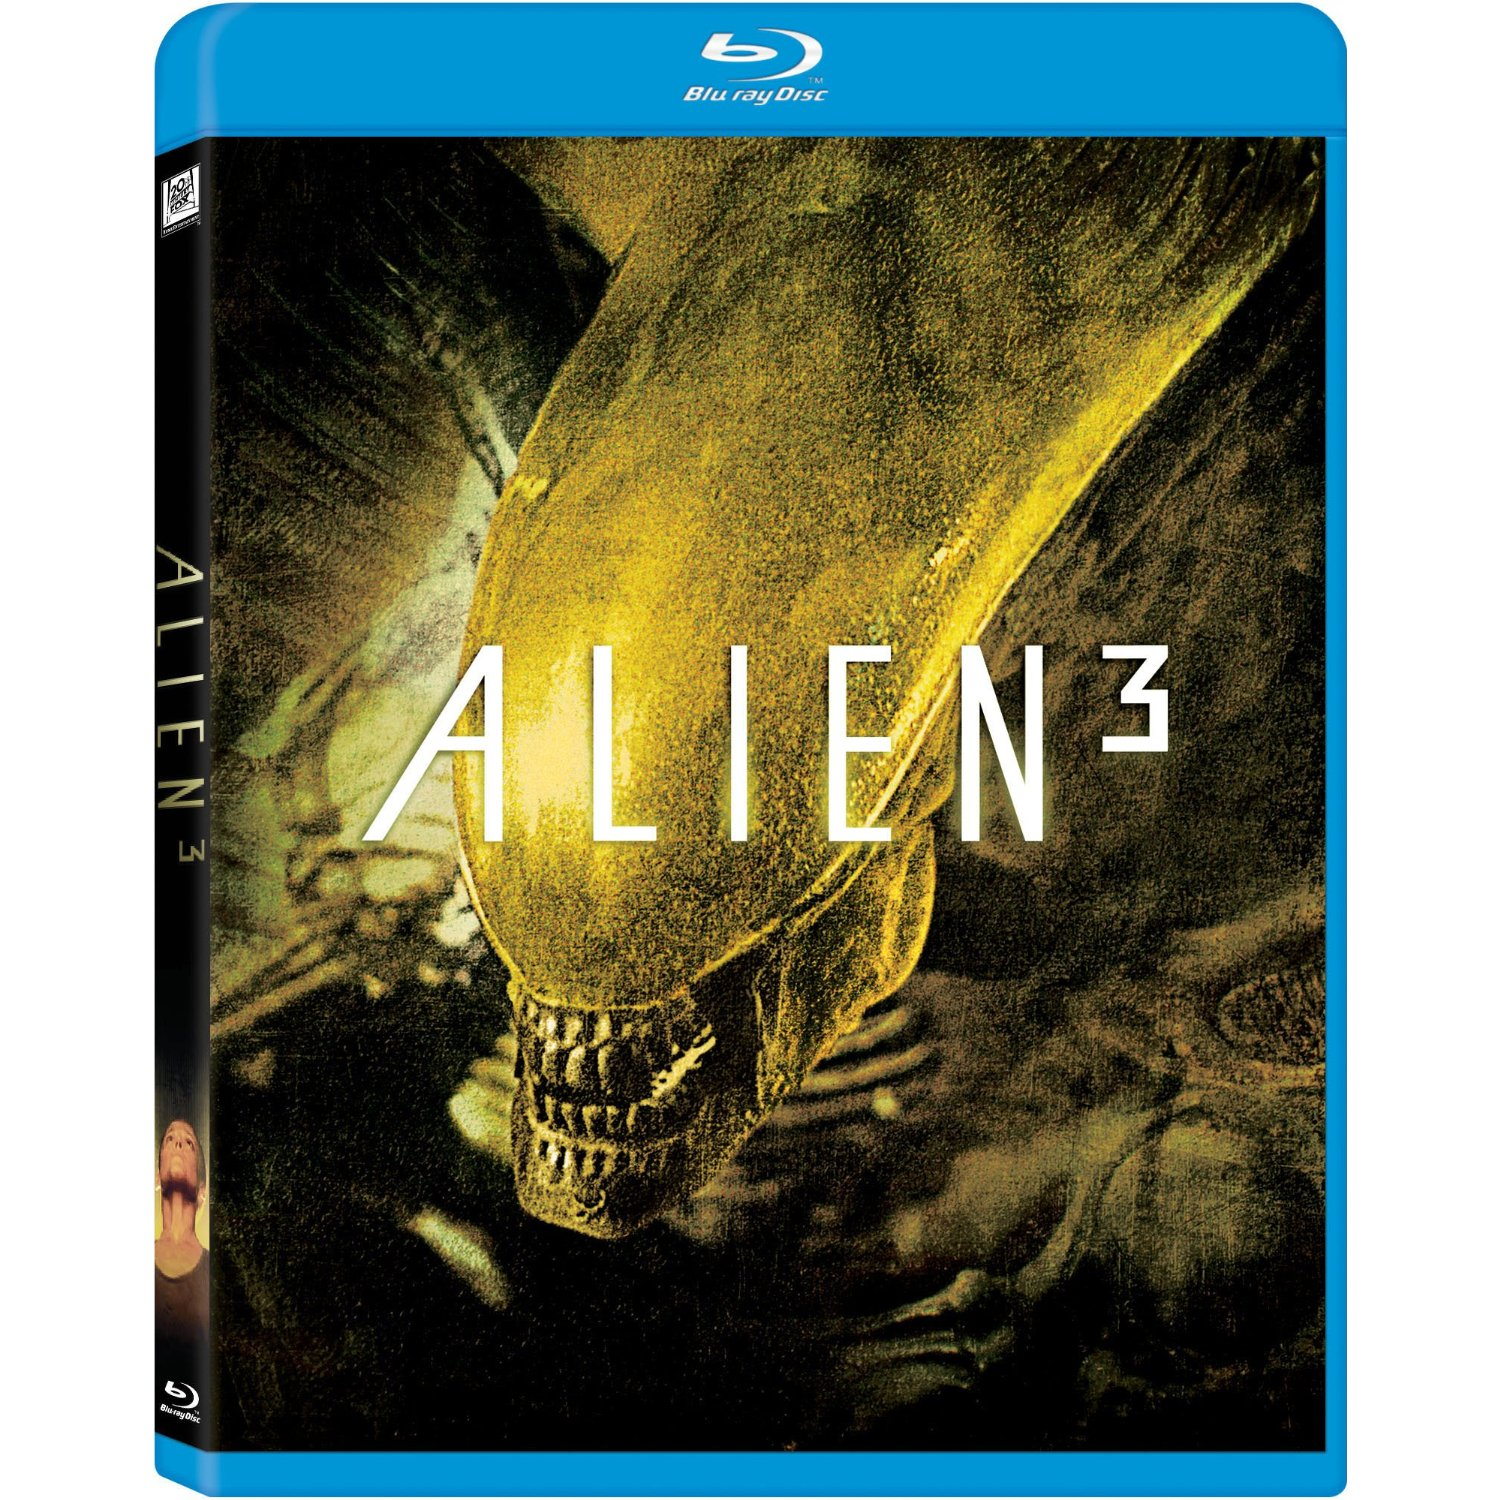 Alien 3 Movie: Dial 'M' For Movie Reviews